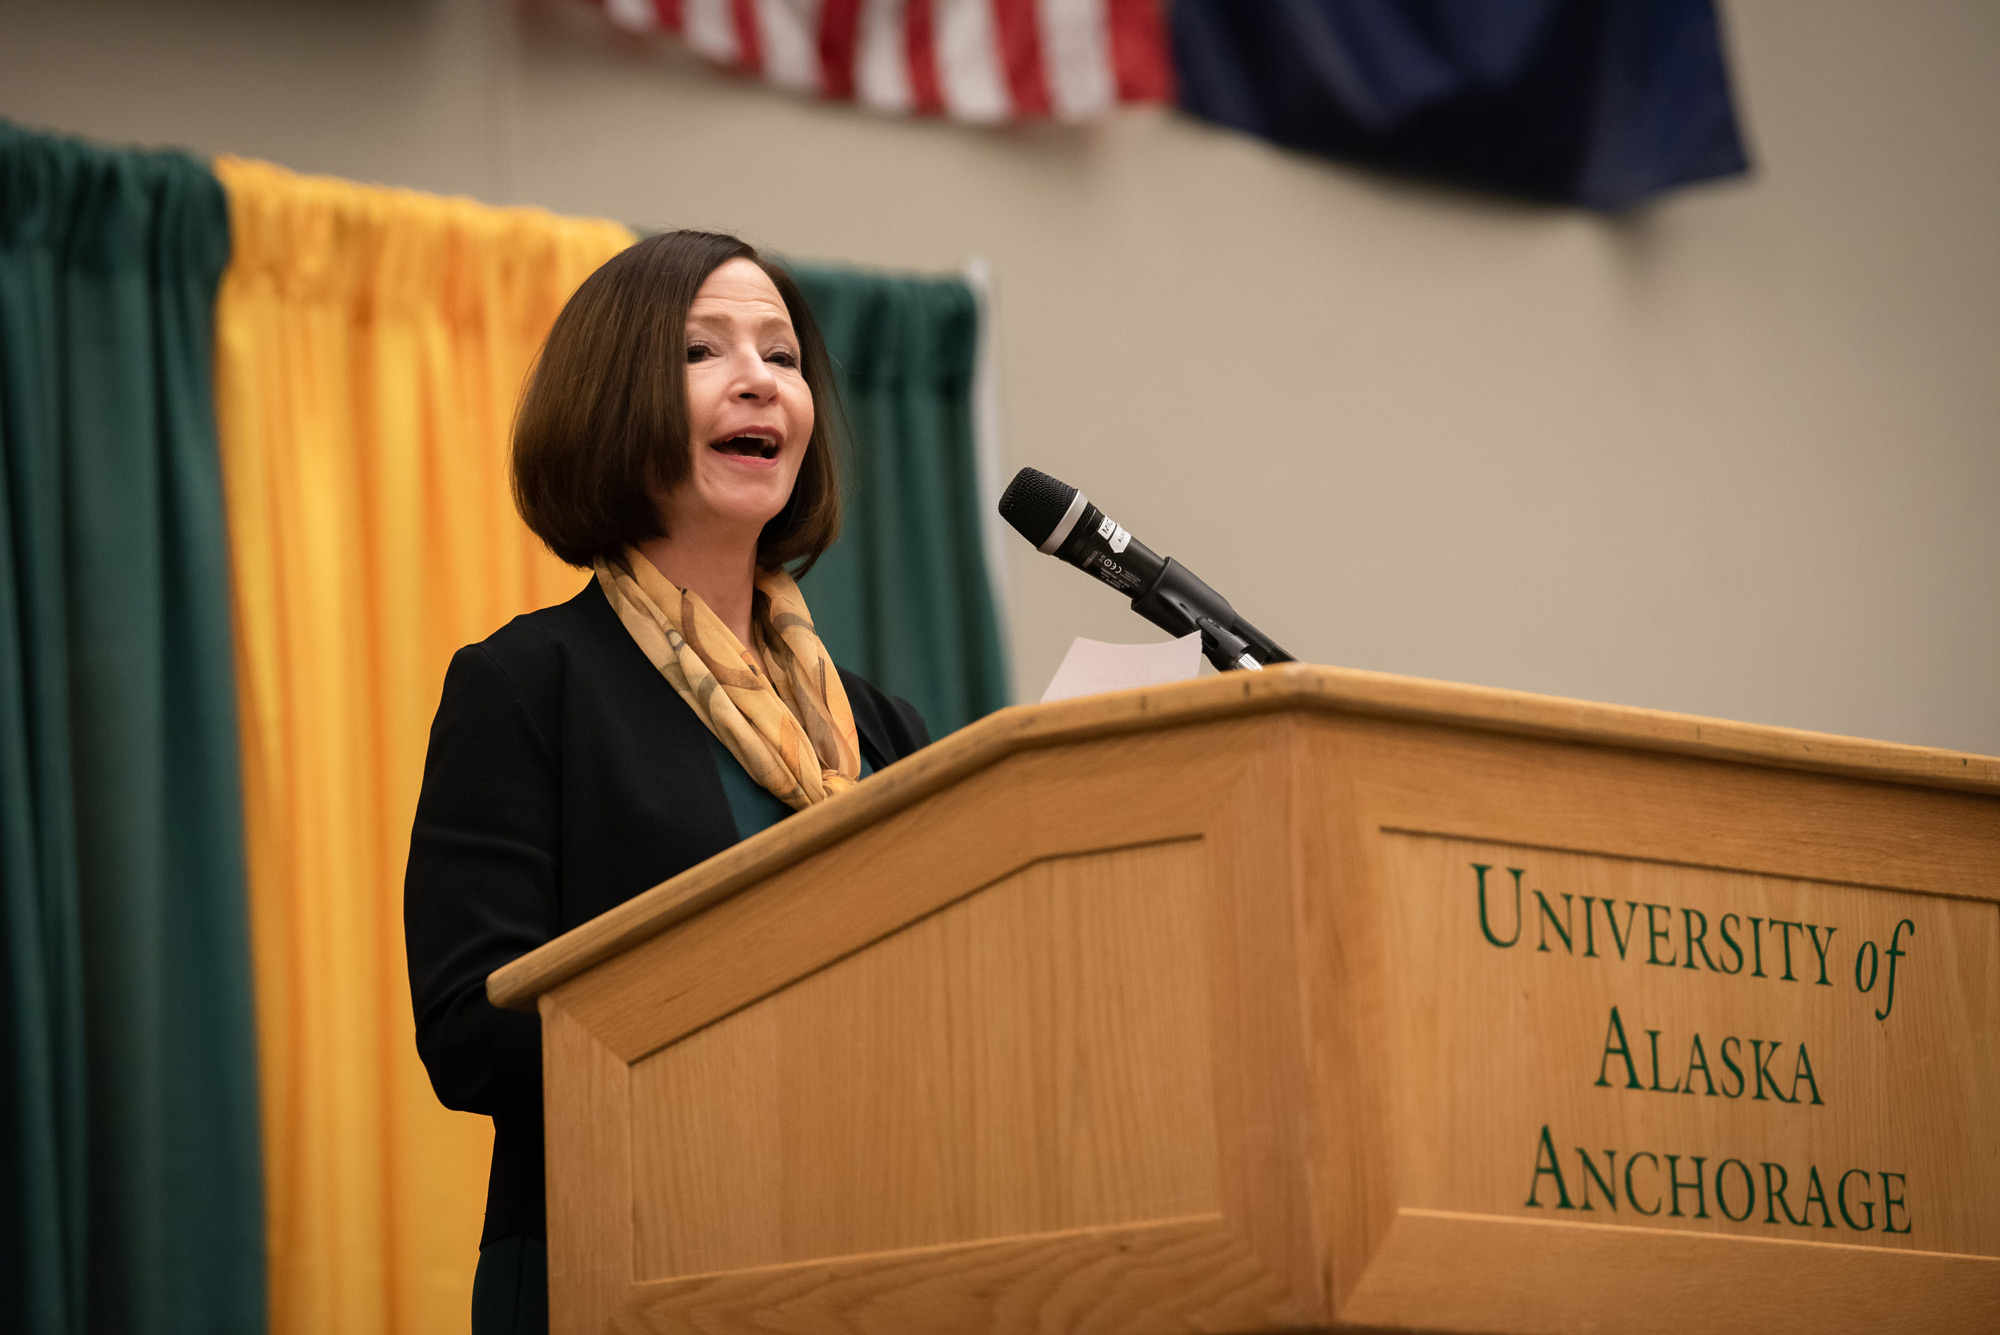 UAA Chancellor Cathy Sandeen speaks at UAA's 2019 Alumni Homecoming Breakfast in the Alaska Airlines Center.